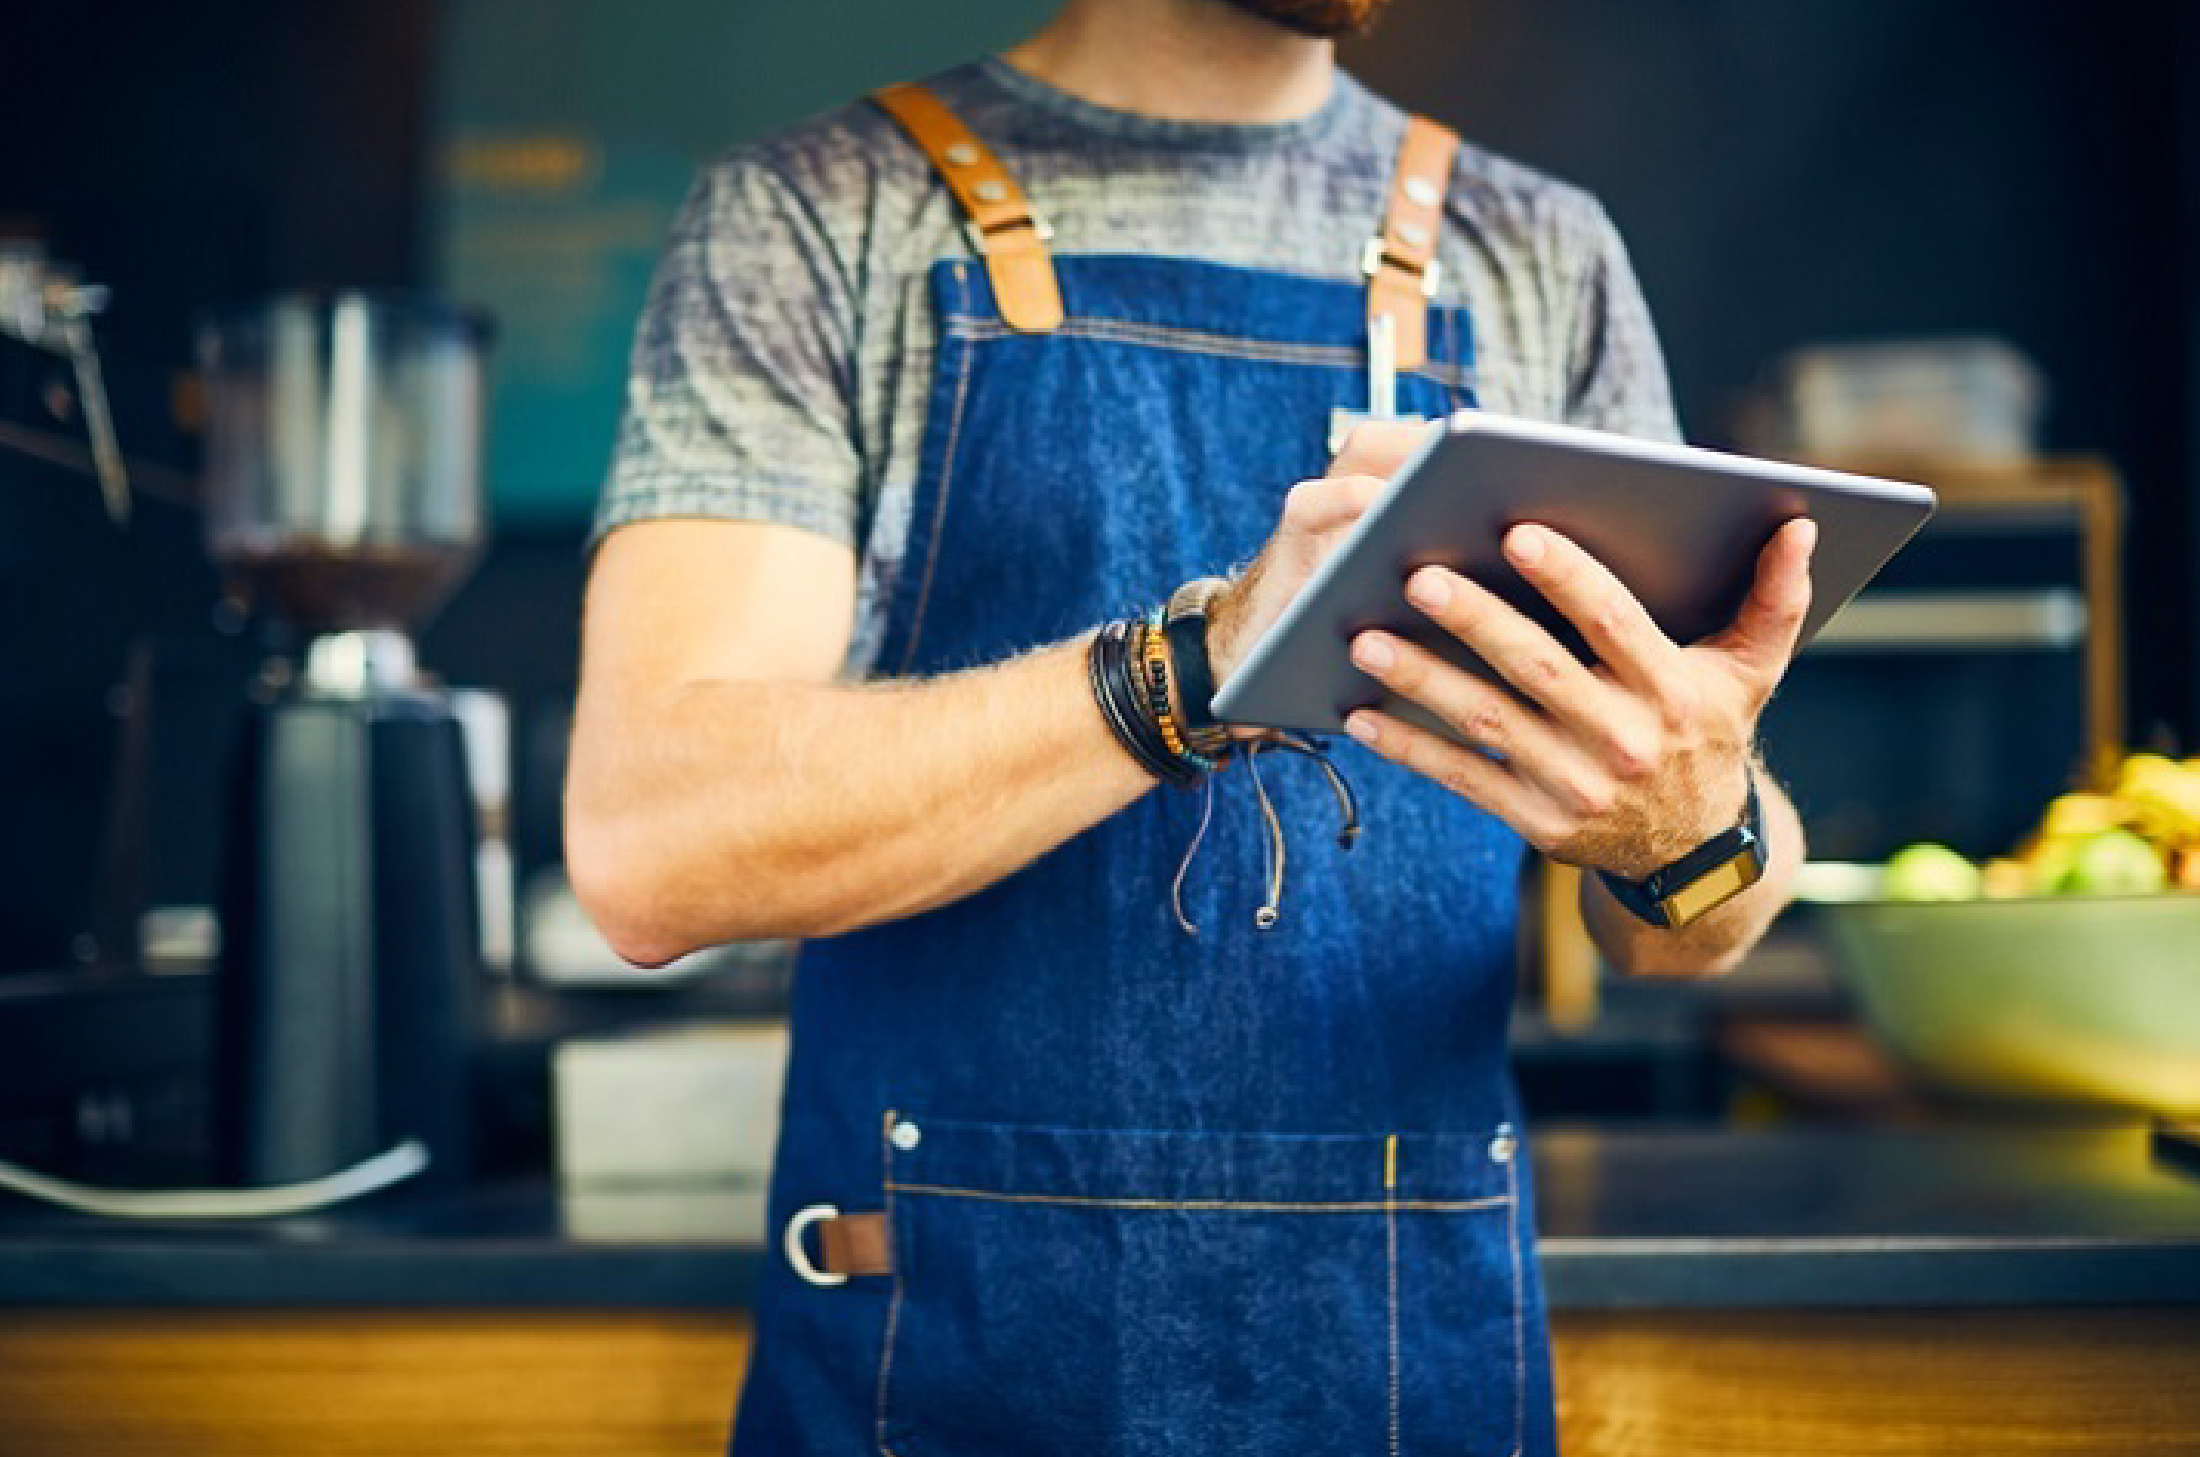 Restaurant technology trends are launching the industry into the digital age. Here are the tools you need to keep your restaurant on top of the trends